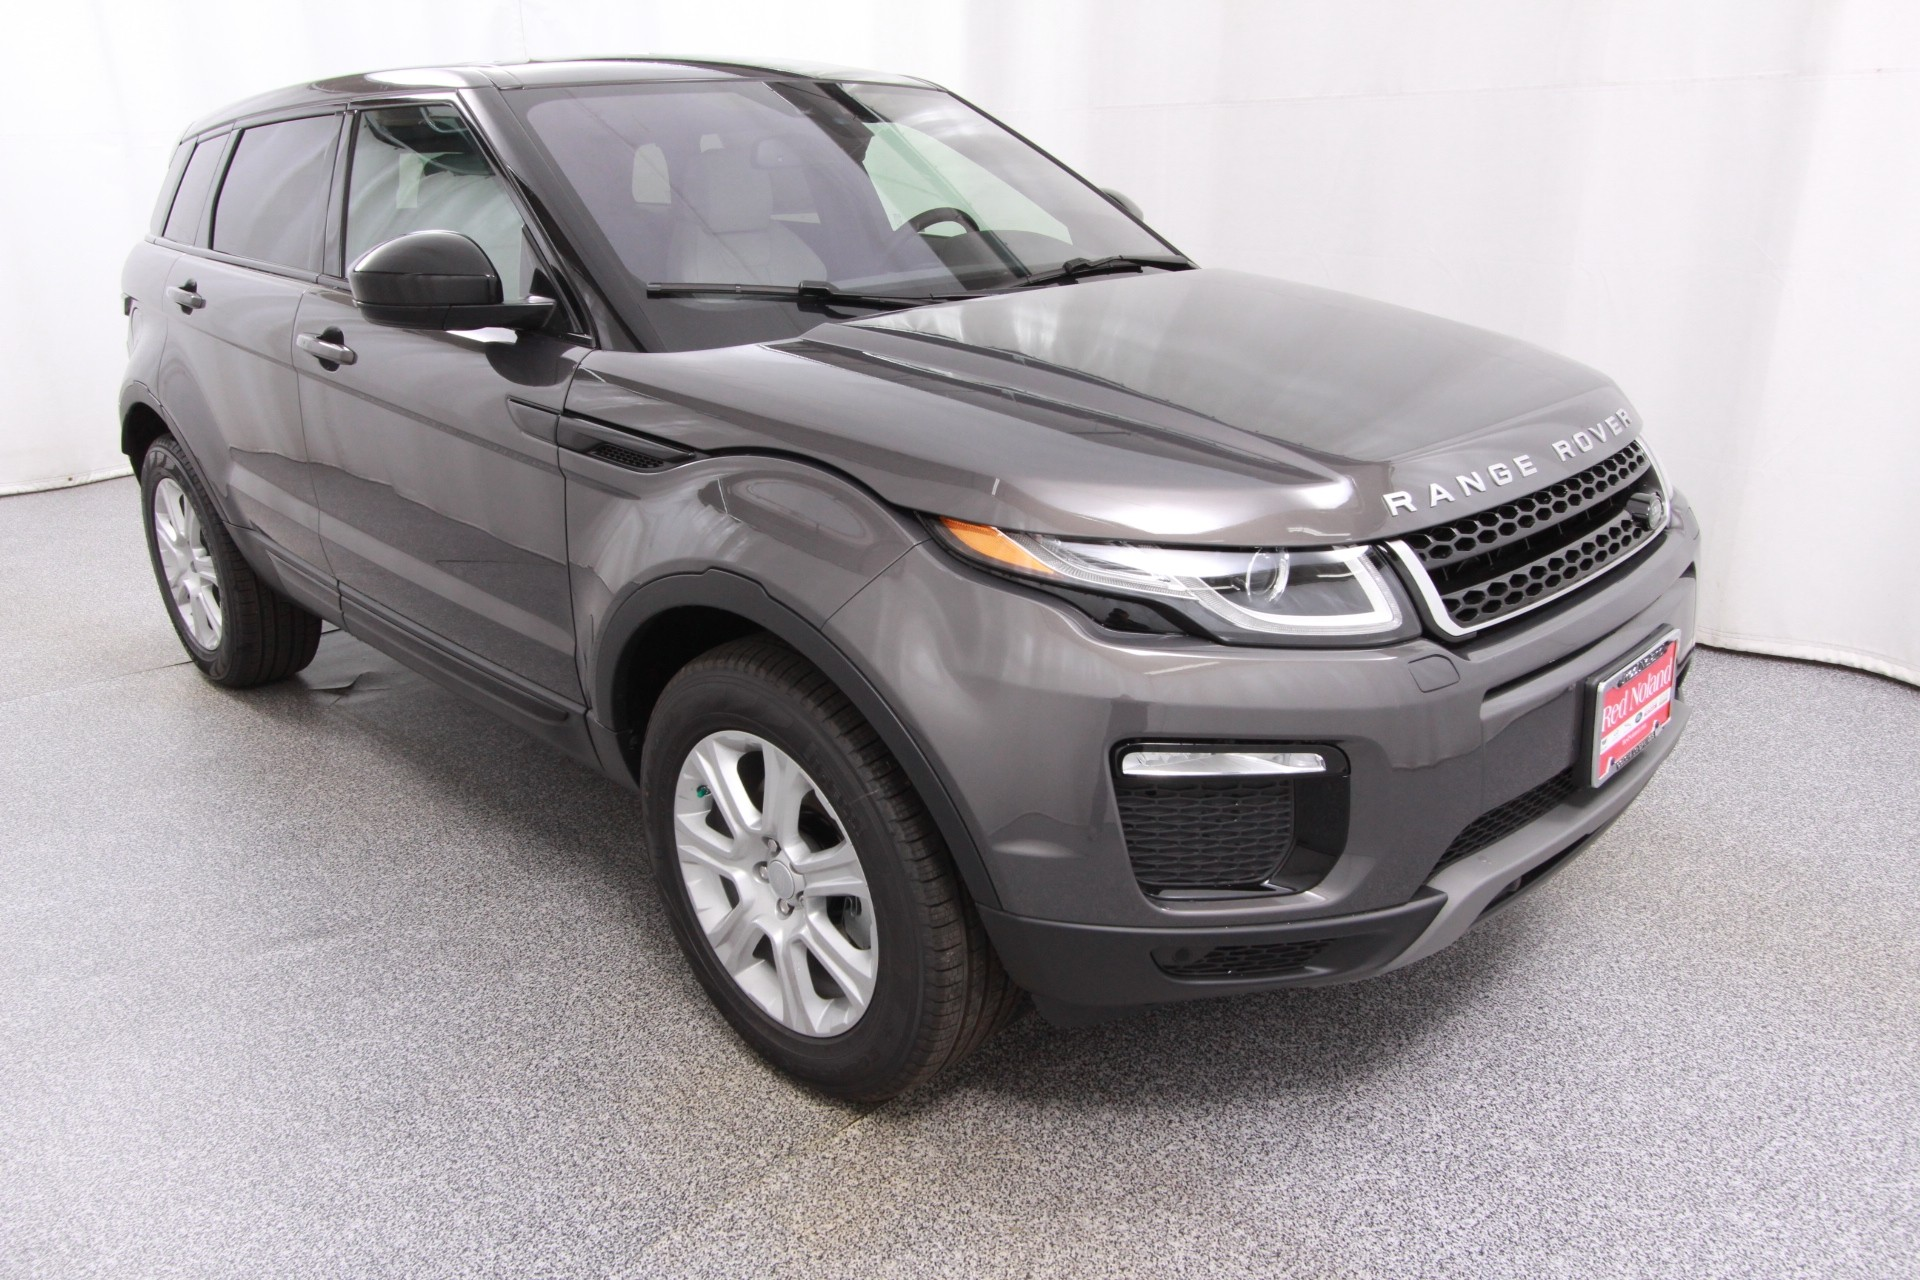 Approved Certified Pre Owned Range Rover Evoque for sale Colorado